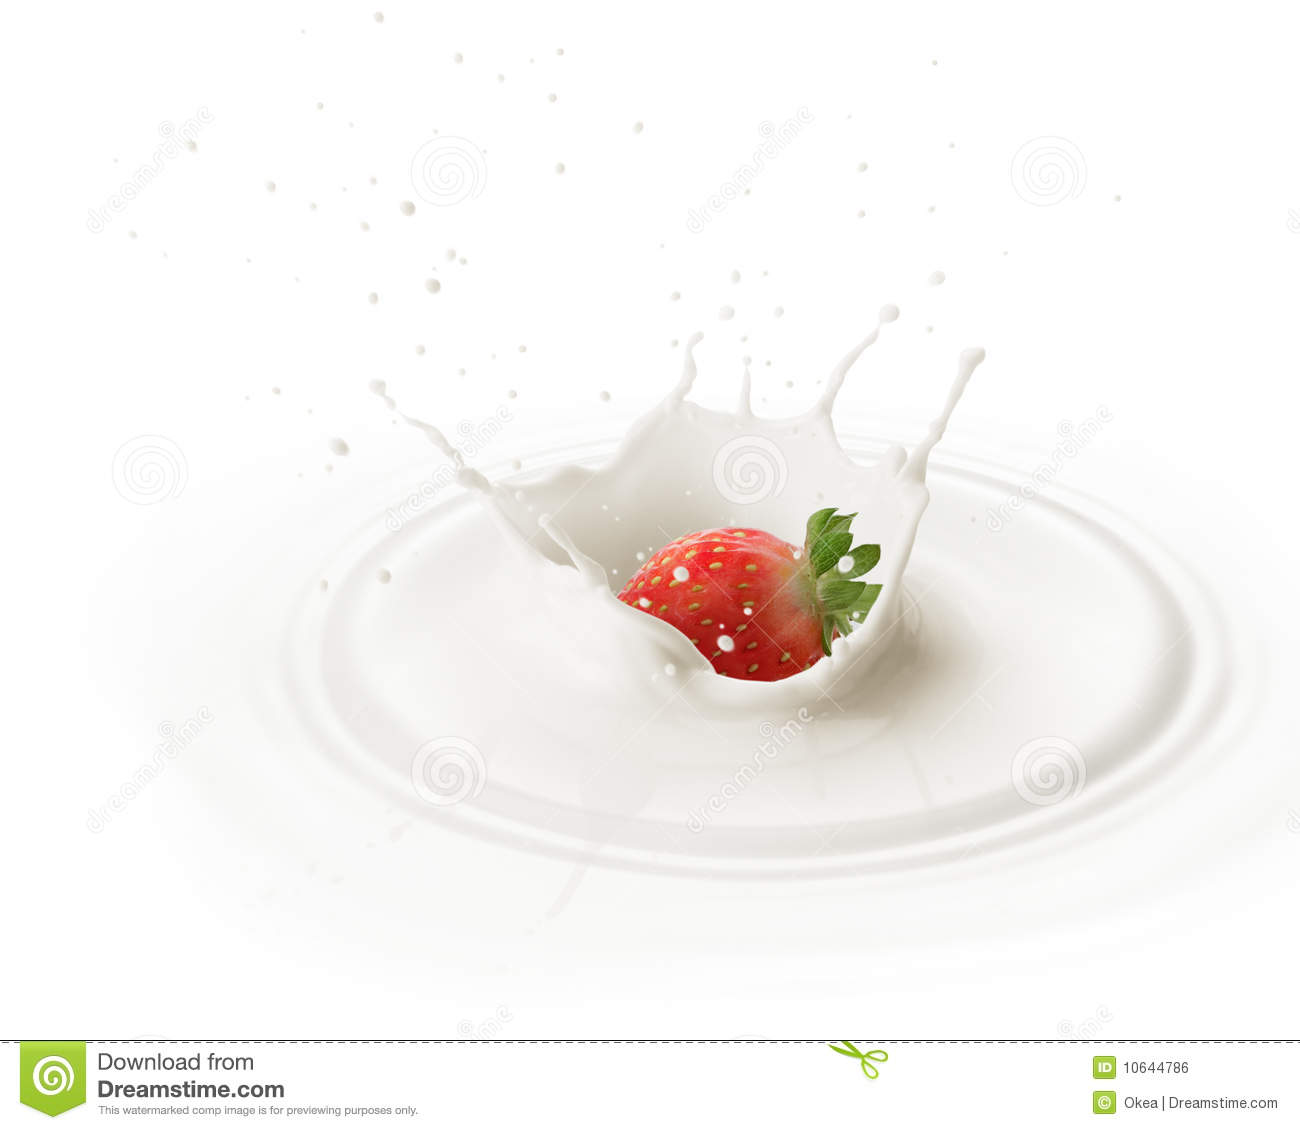 Dropping strawberry into milk